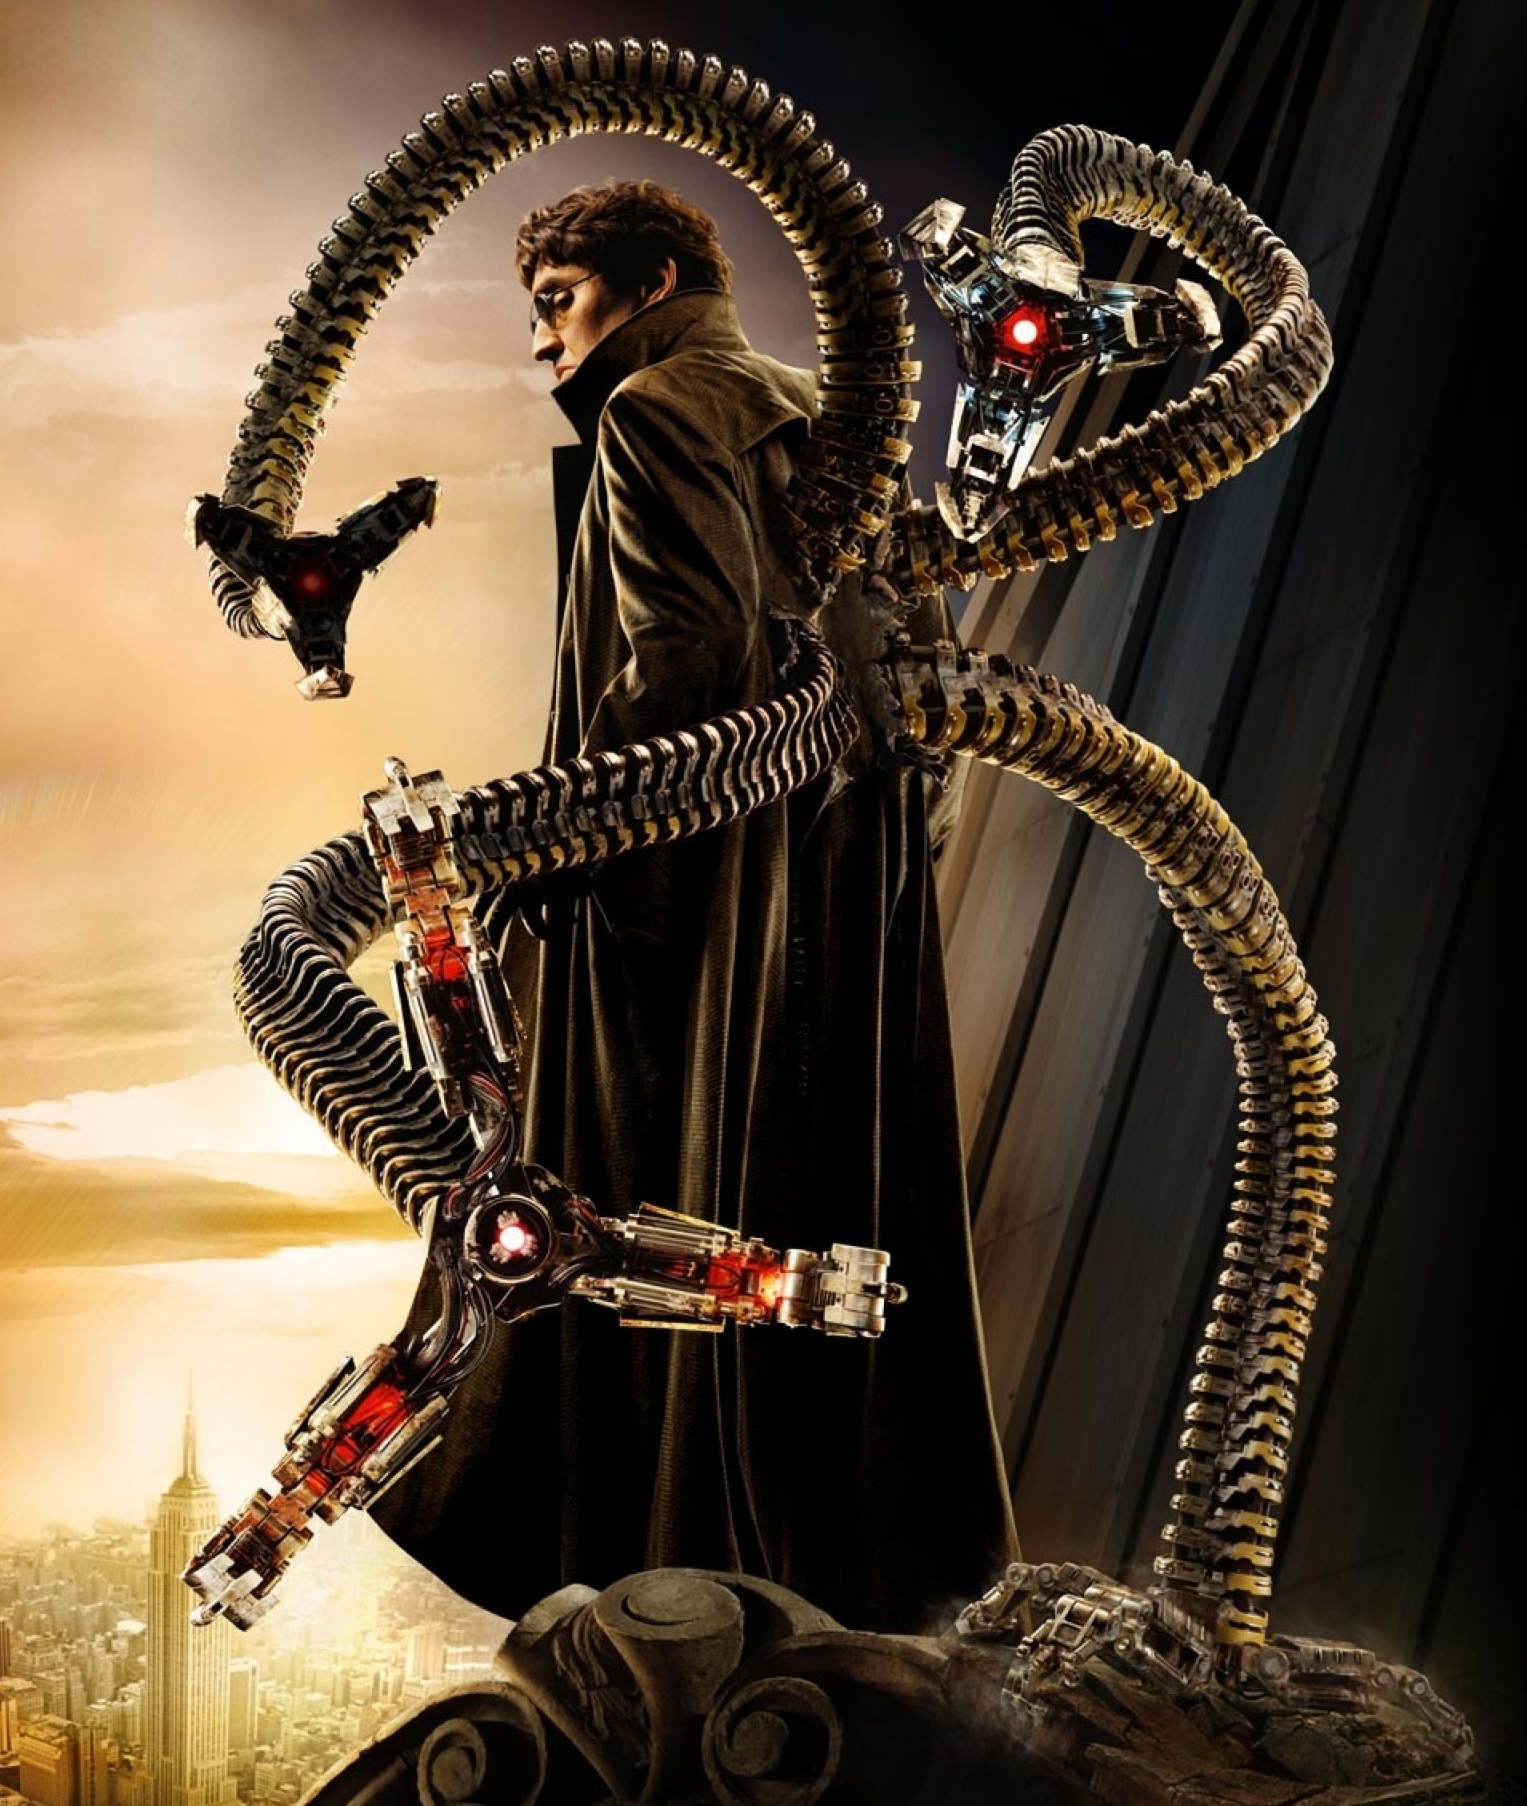 Doctor Octopus (Spider-Man Films)